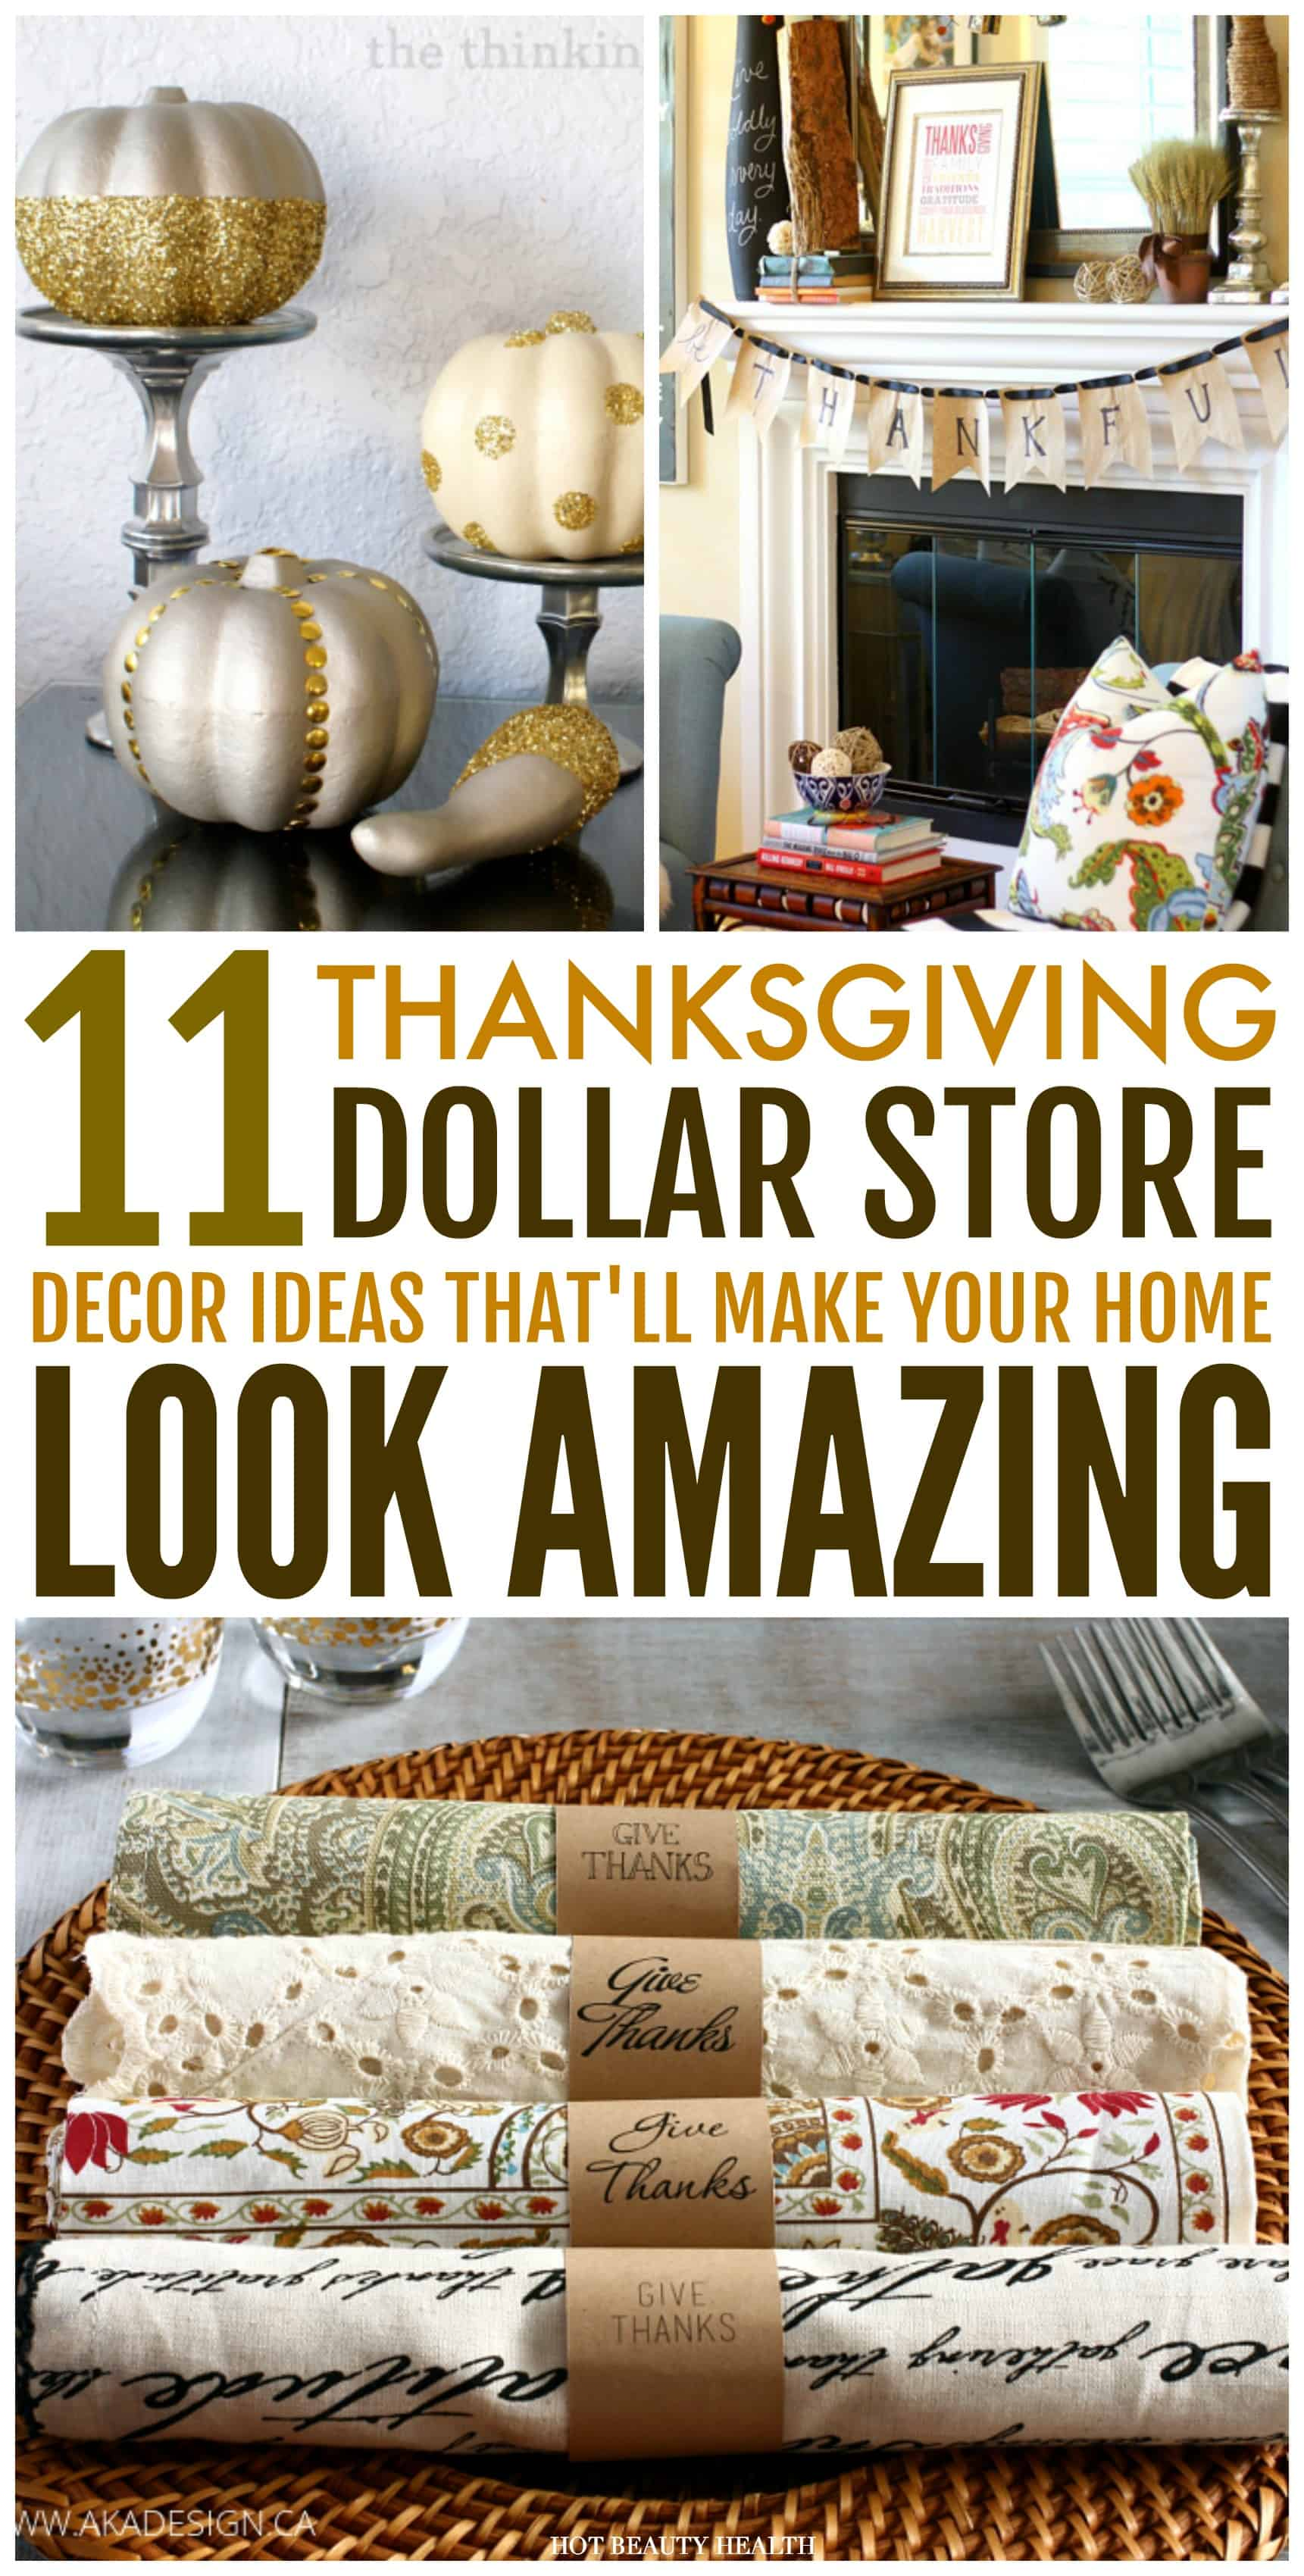 11 dollar store thanksgiving decor ideas that are super easy hot beauty health - Dollar store home decor ideas pict ...